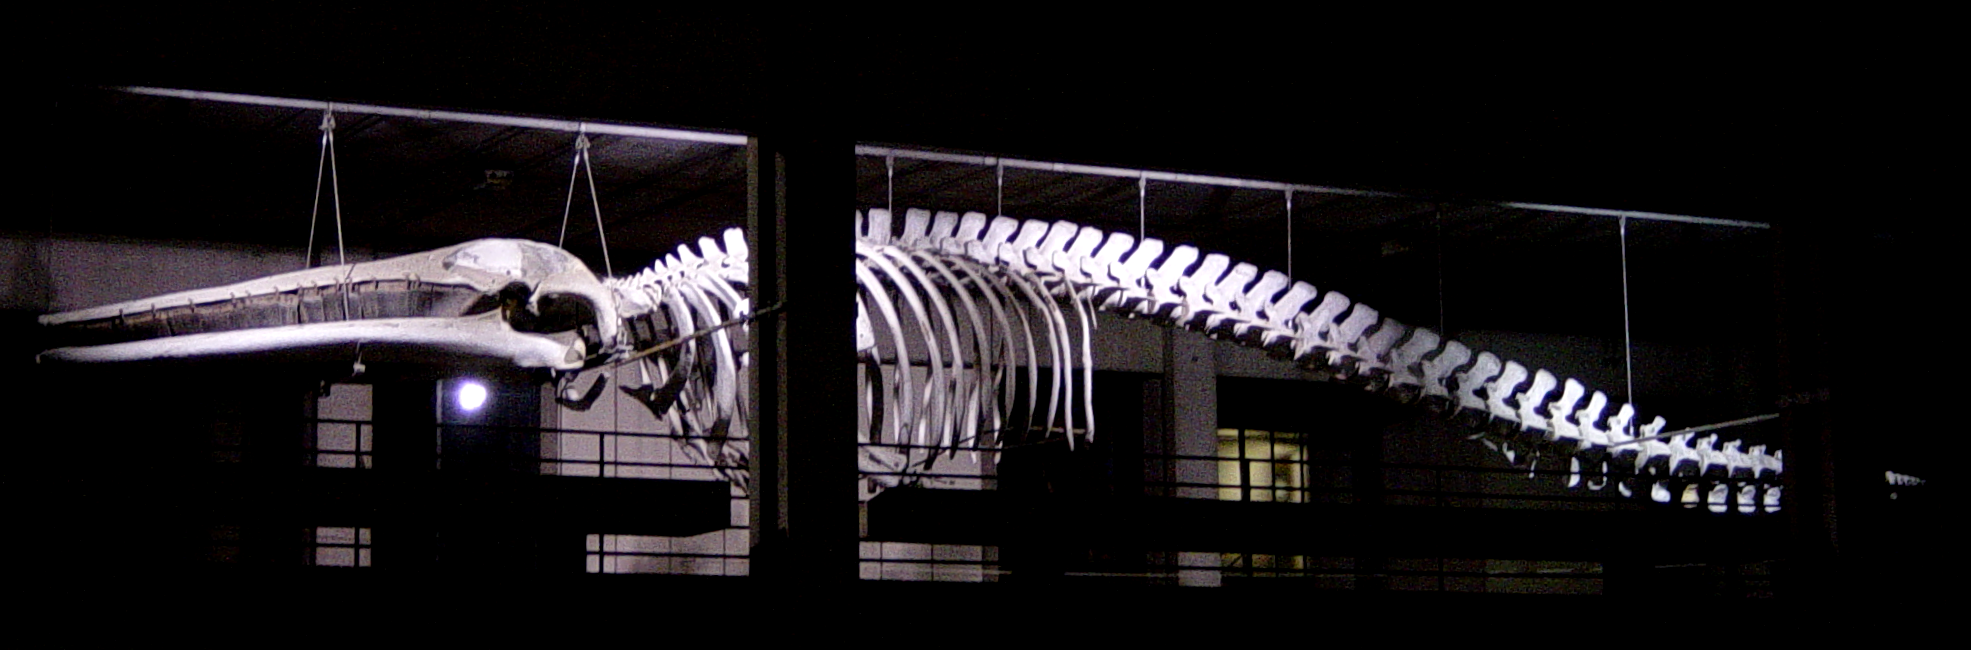 Fin whale skeleton - photo#6